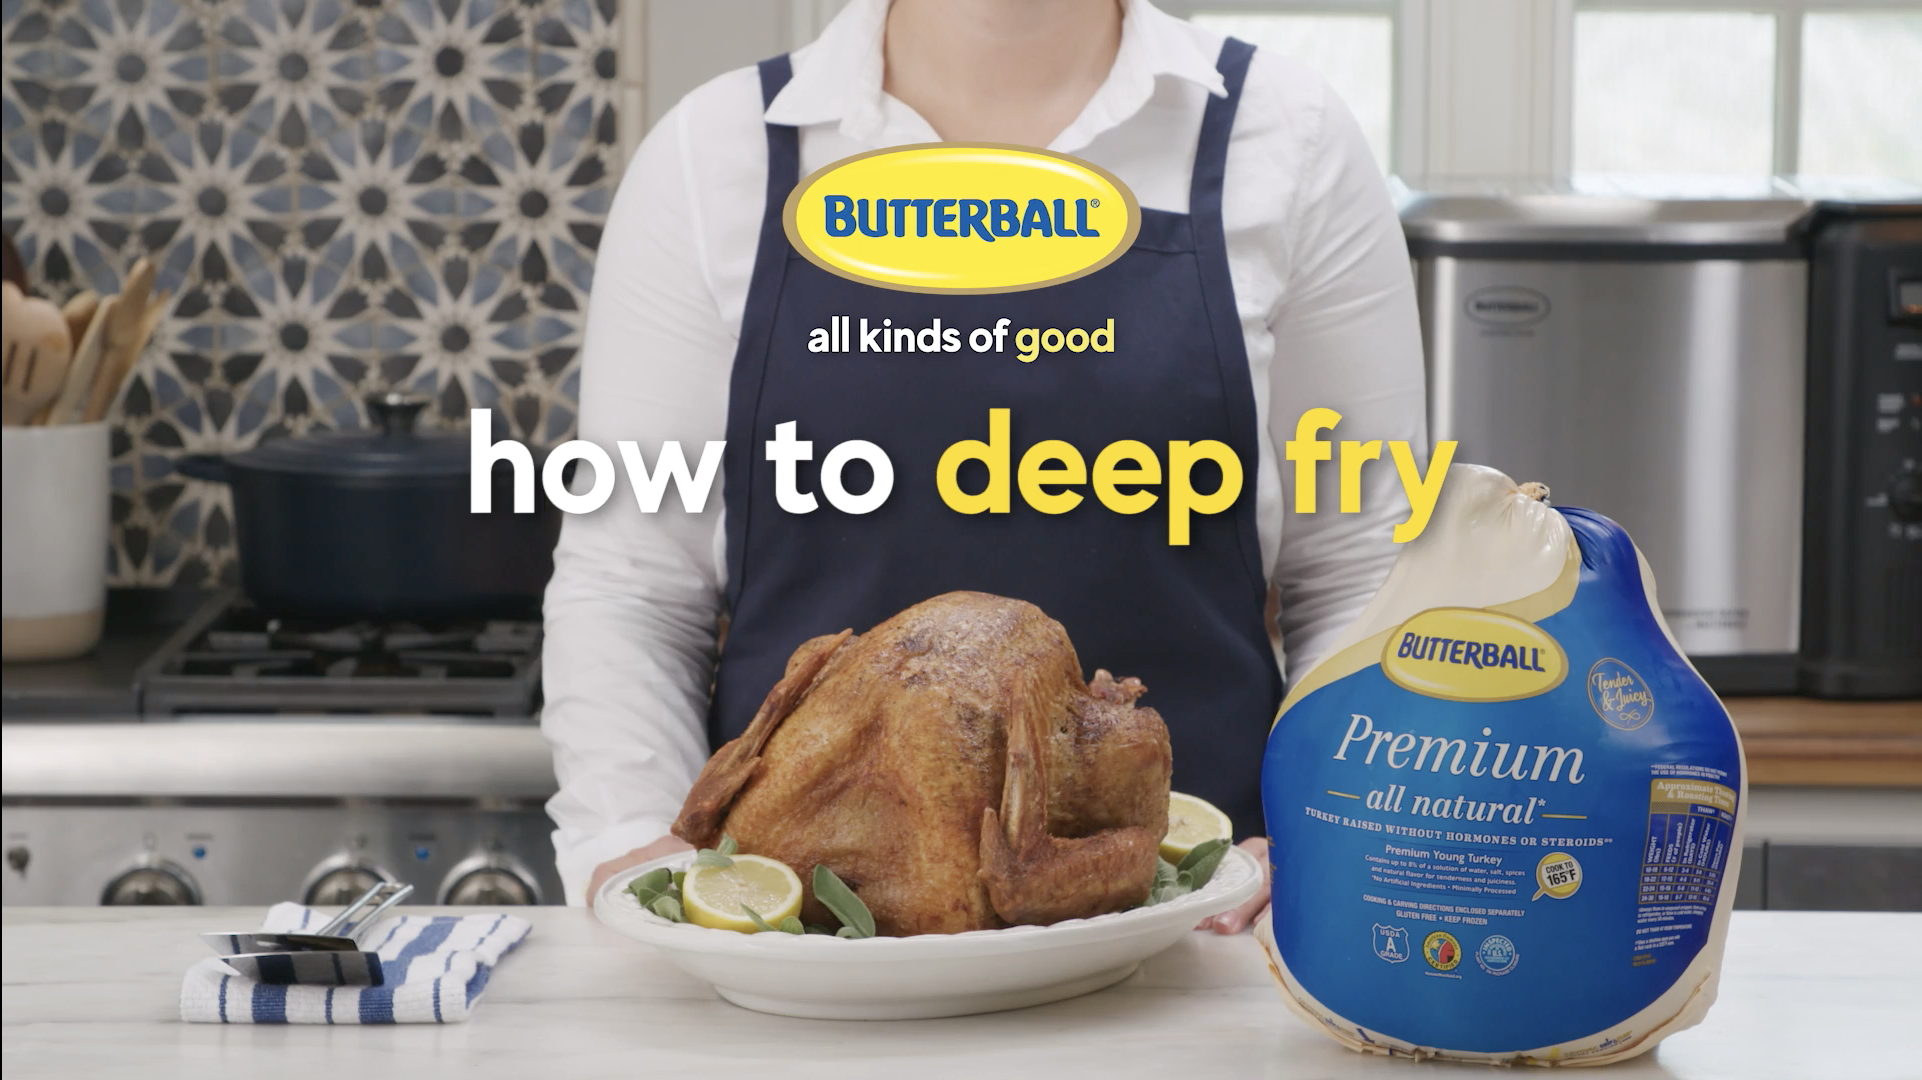 Butterball How to deep fry video thumbnail